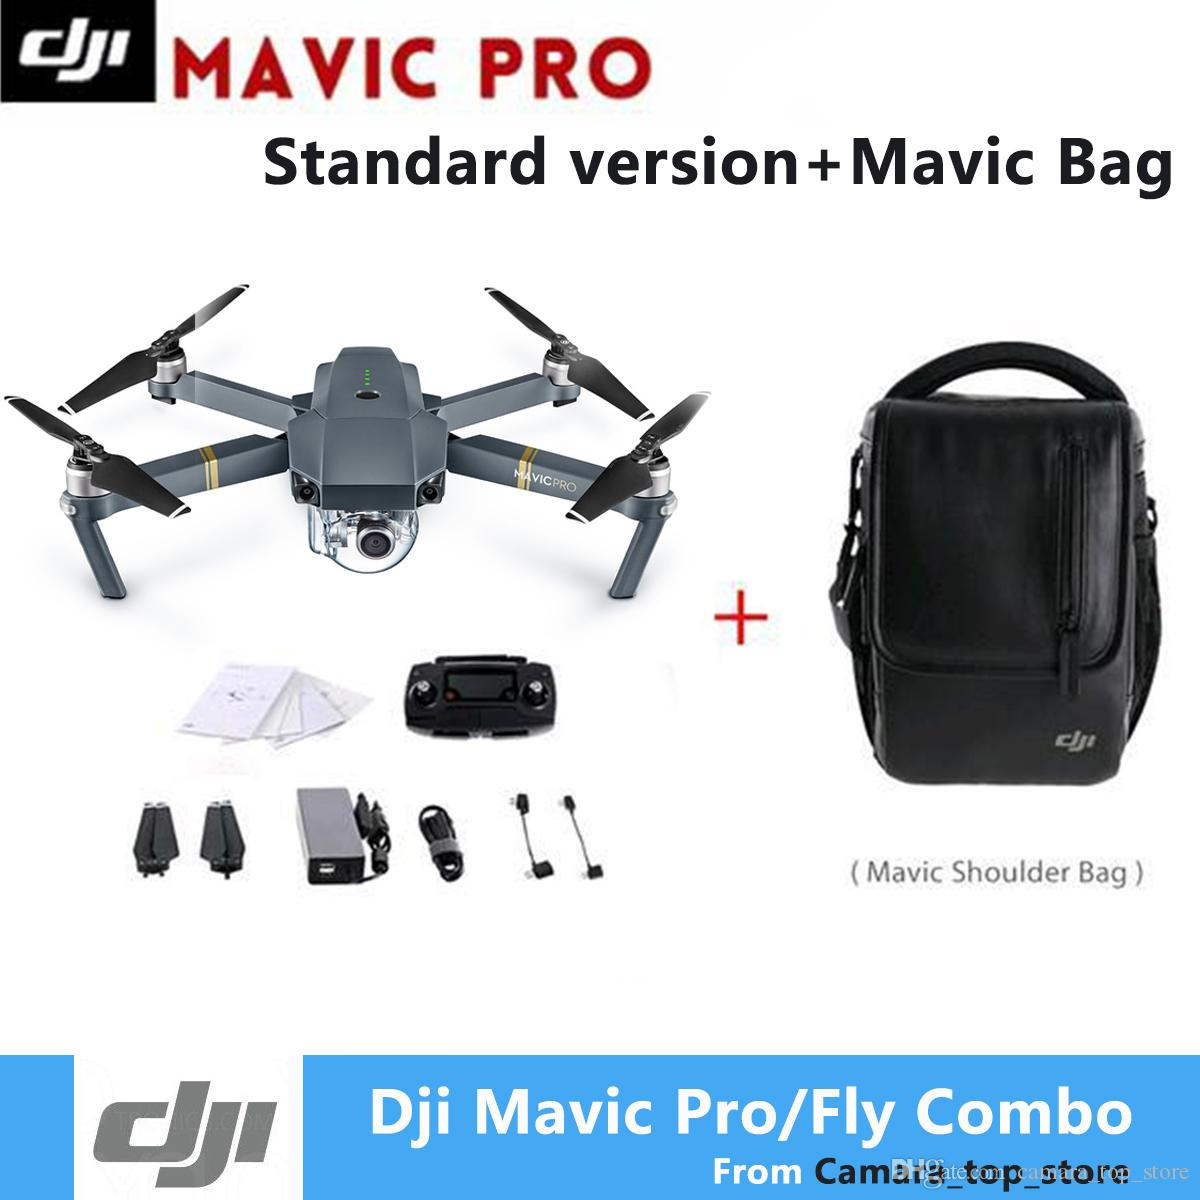 Best Quality Dji Mavic Pro Fly More Combo Quadcopter 4k Hd Camera 3 Axis Gimbal 7 Km Recording Remote Control 12 Channels Cameria Drones At Cheap Price